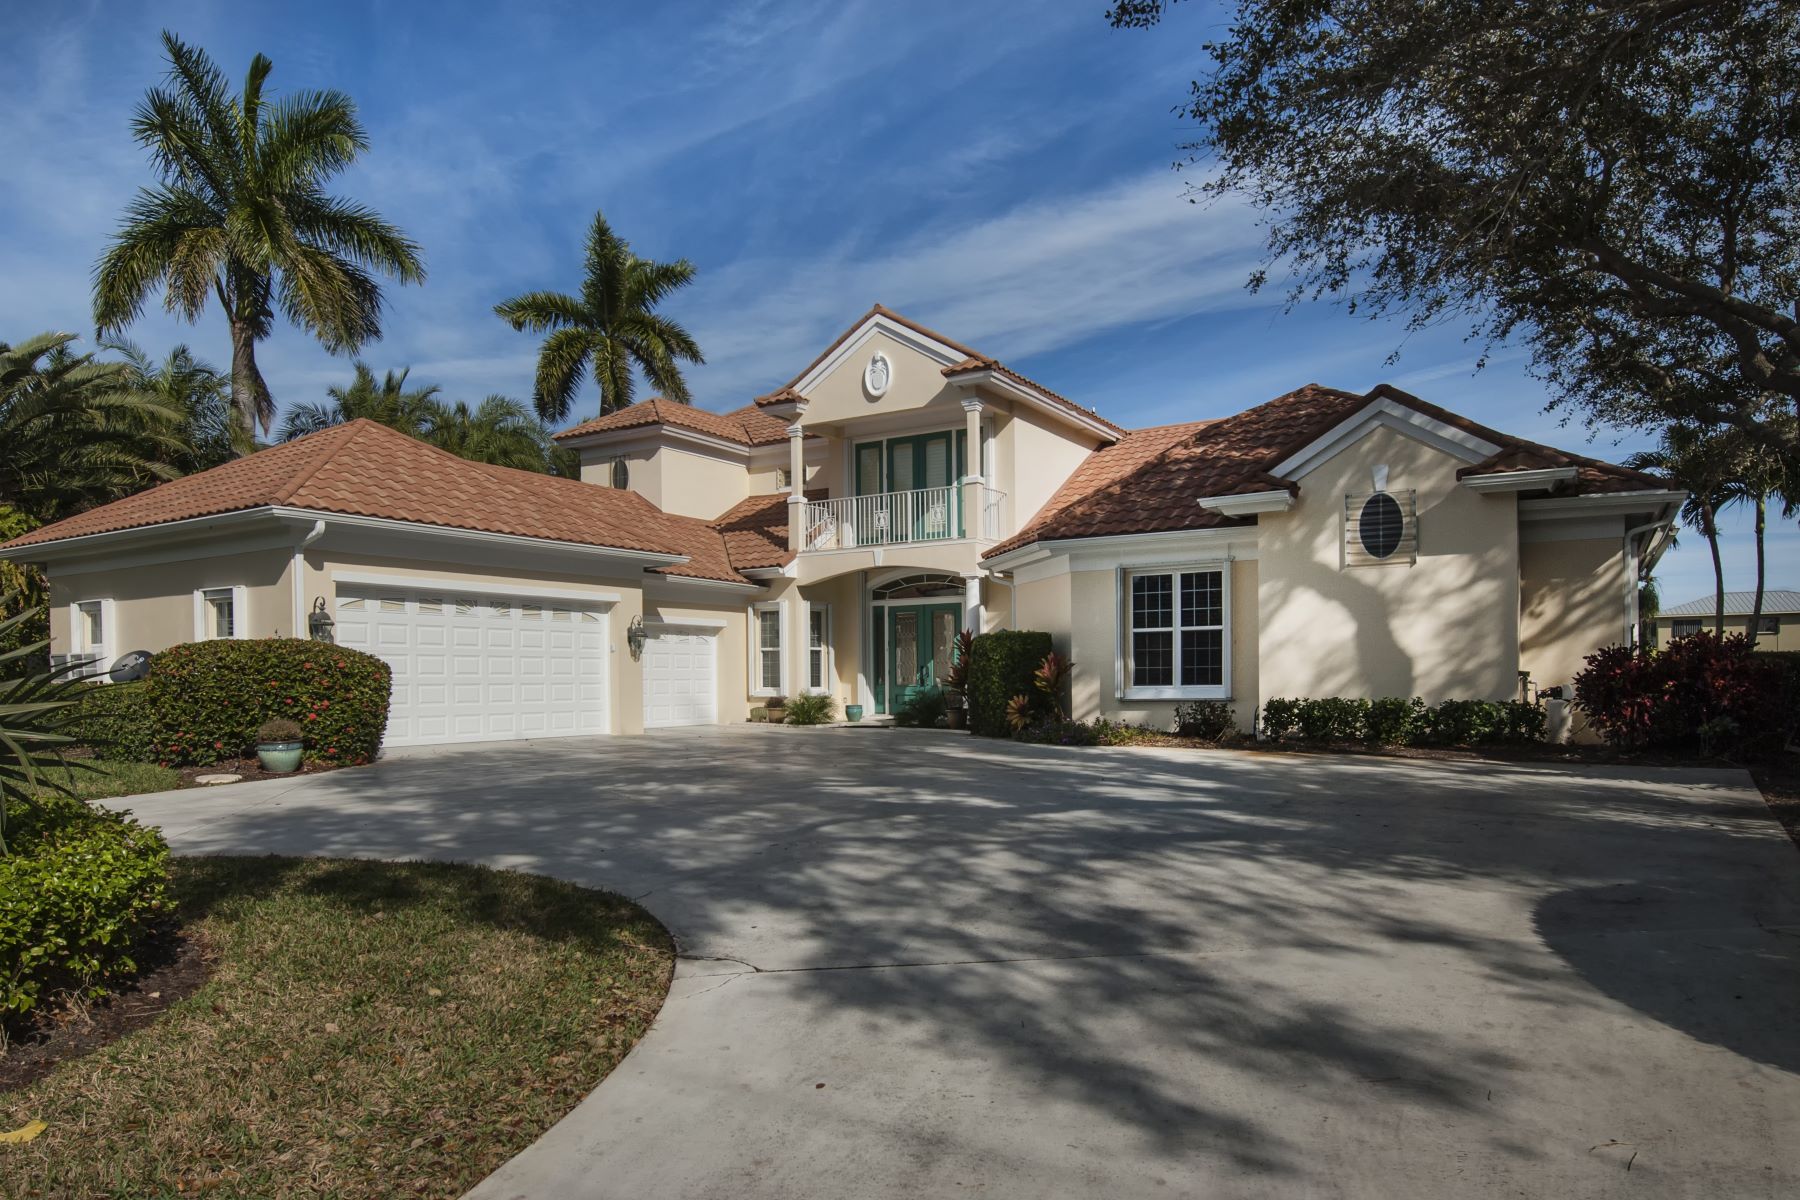 Single Family Homes for Sale at 4770 Bethel Creek Drive Vero Beach, Florida 32963 United States